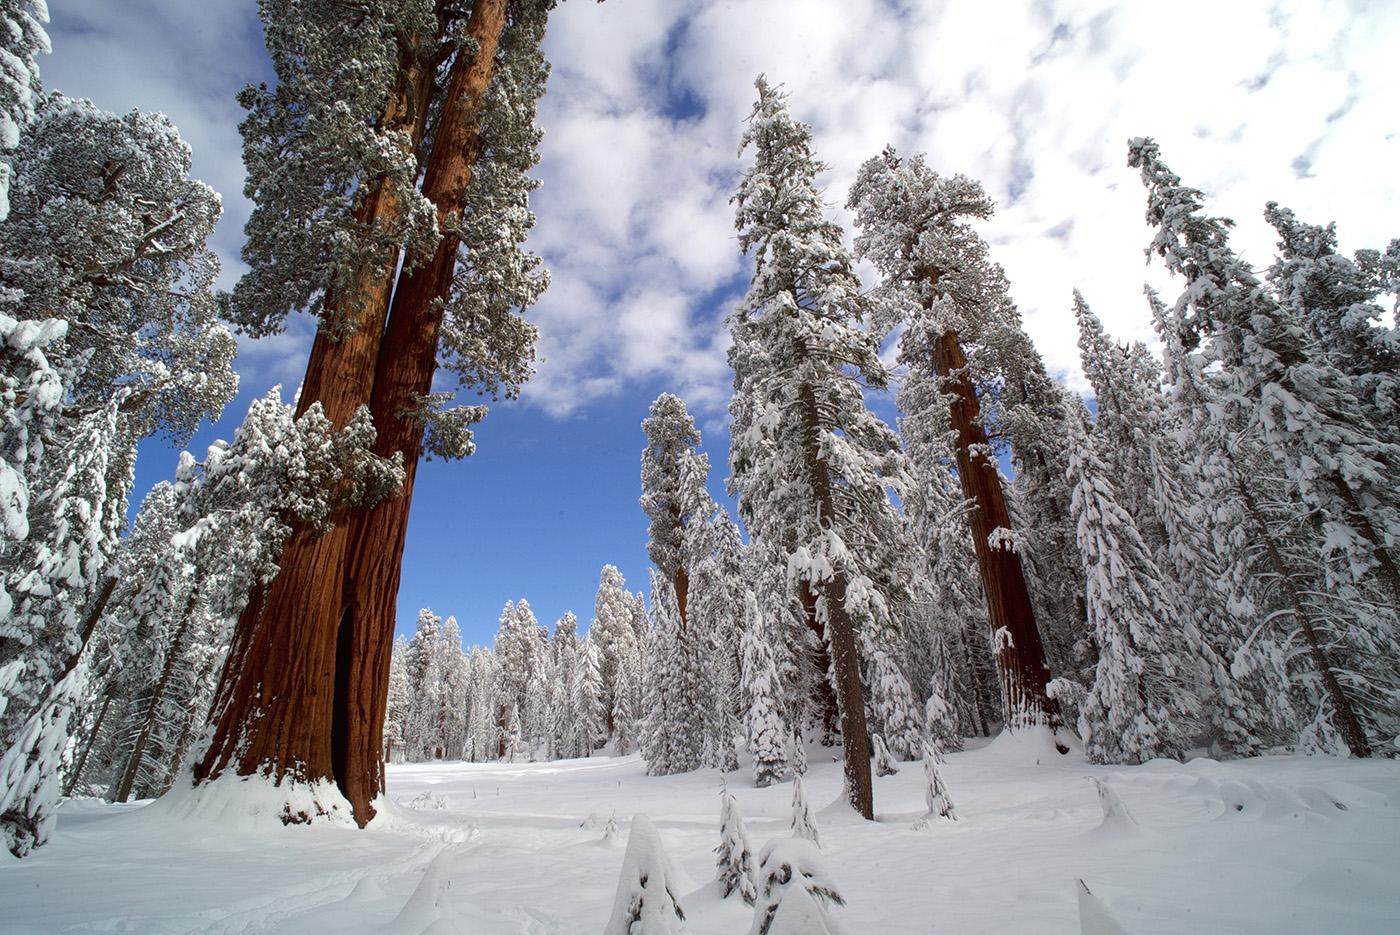 The Giant Forest in Sequoia National Park, home to the largest trees on Earth. (Courtesy of Nimmida Pontecorvo/© THIRTEEN Productions LLC)